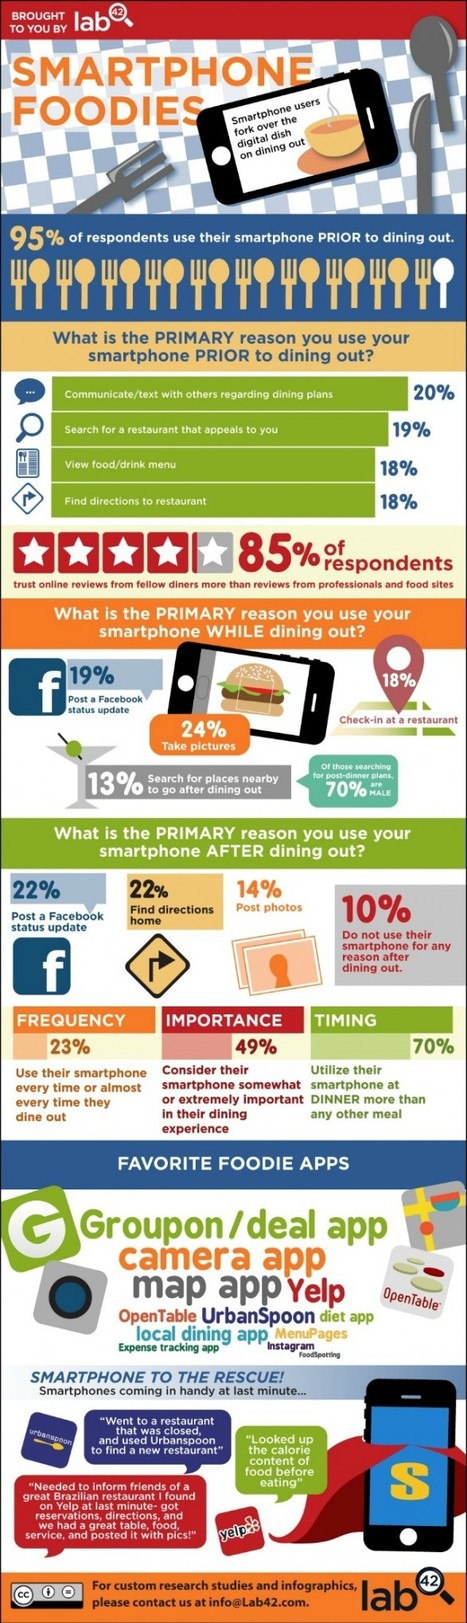 Smartphone Foodies - 95% use phone Prior to dining out. (infographic) | MarketingHits | Scoop.it